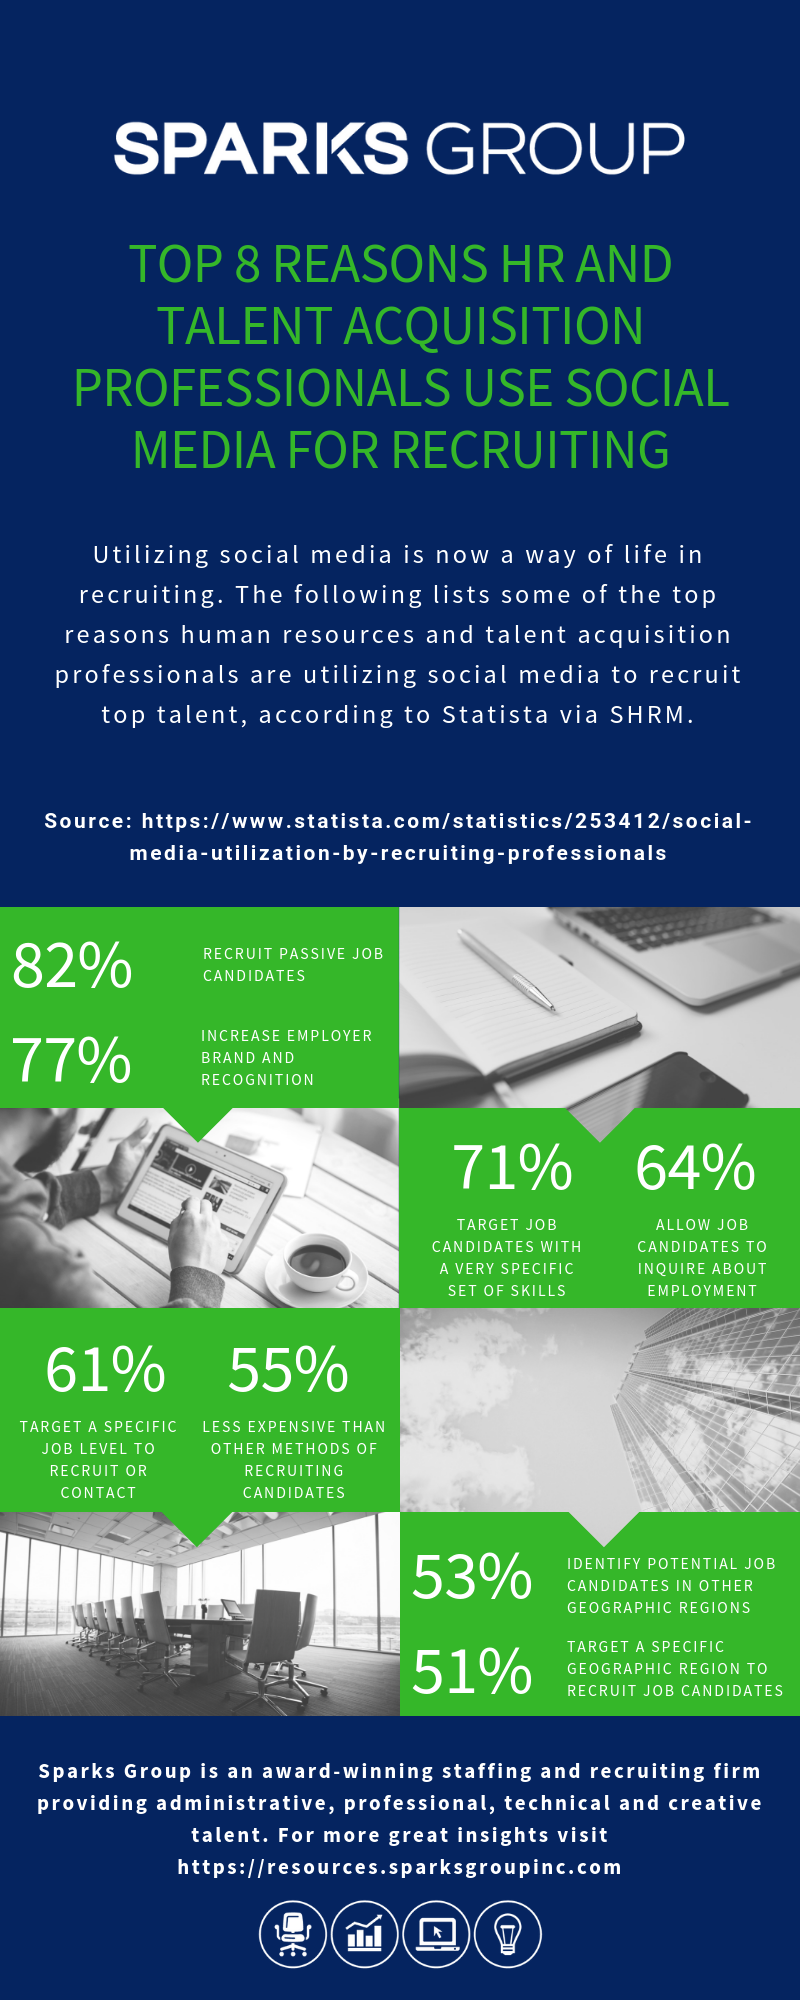 Top 8 Reasons Human Resources and Talent Acquisition Professionals Use Social Media for Recruiting